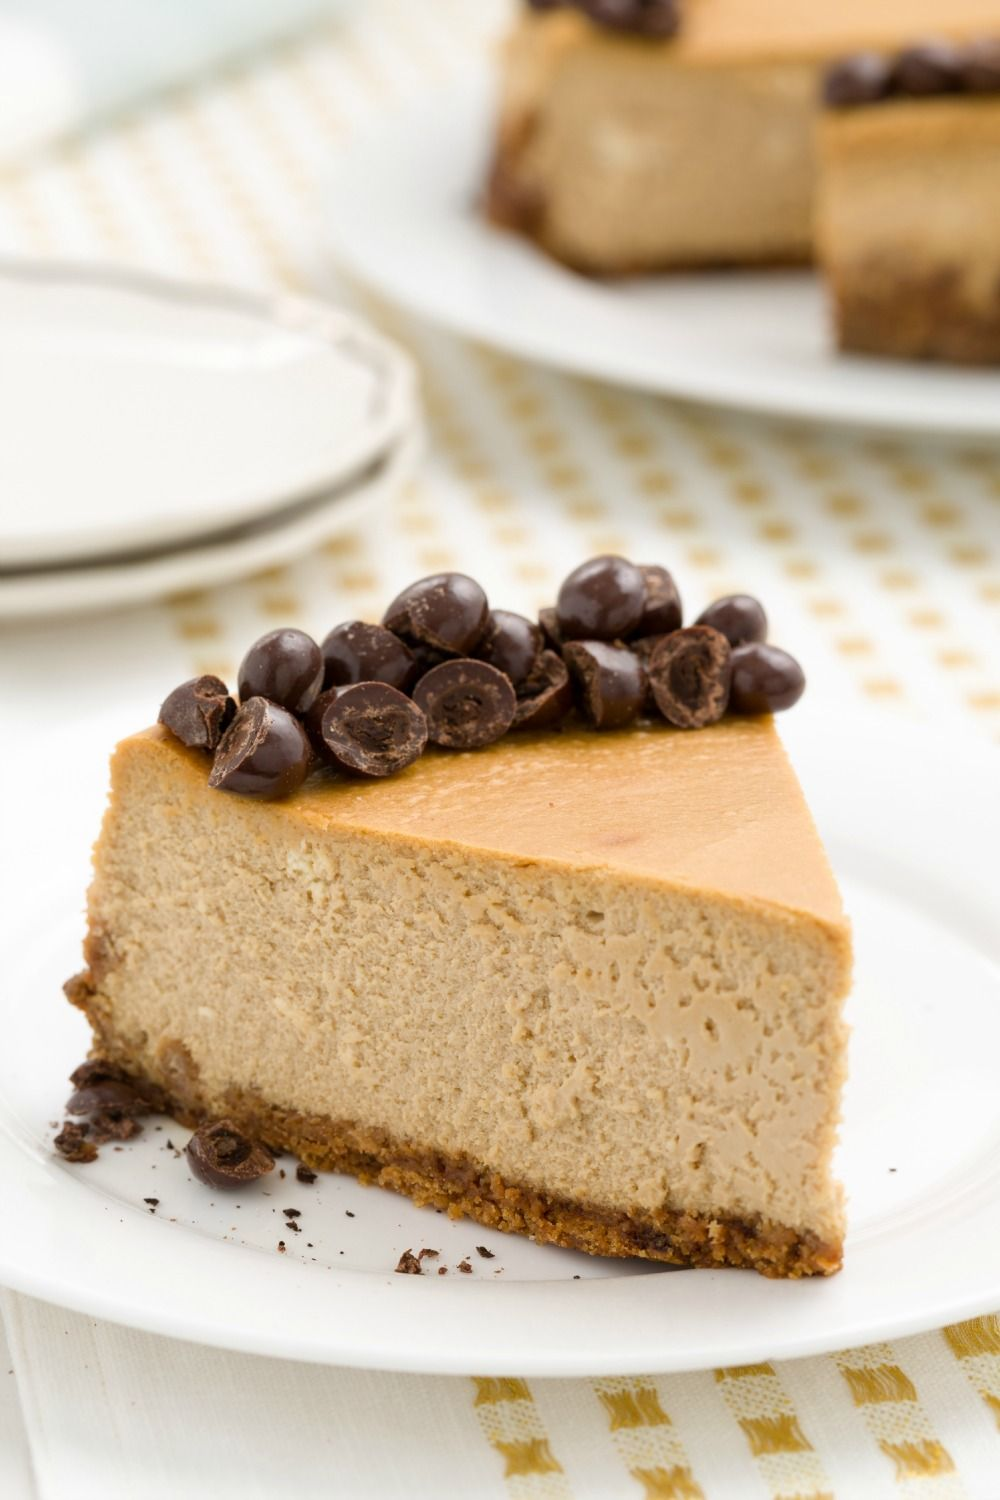 Discussion on this topic: Cappuccine Cheesecake, cappuccine-cheesecake/